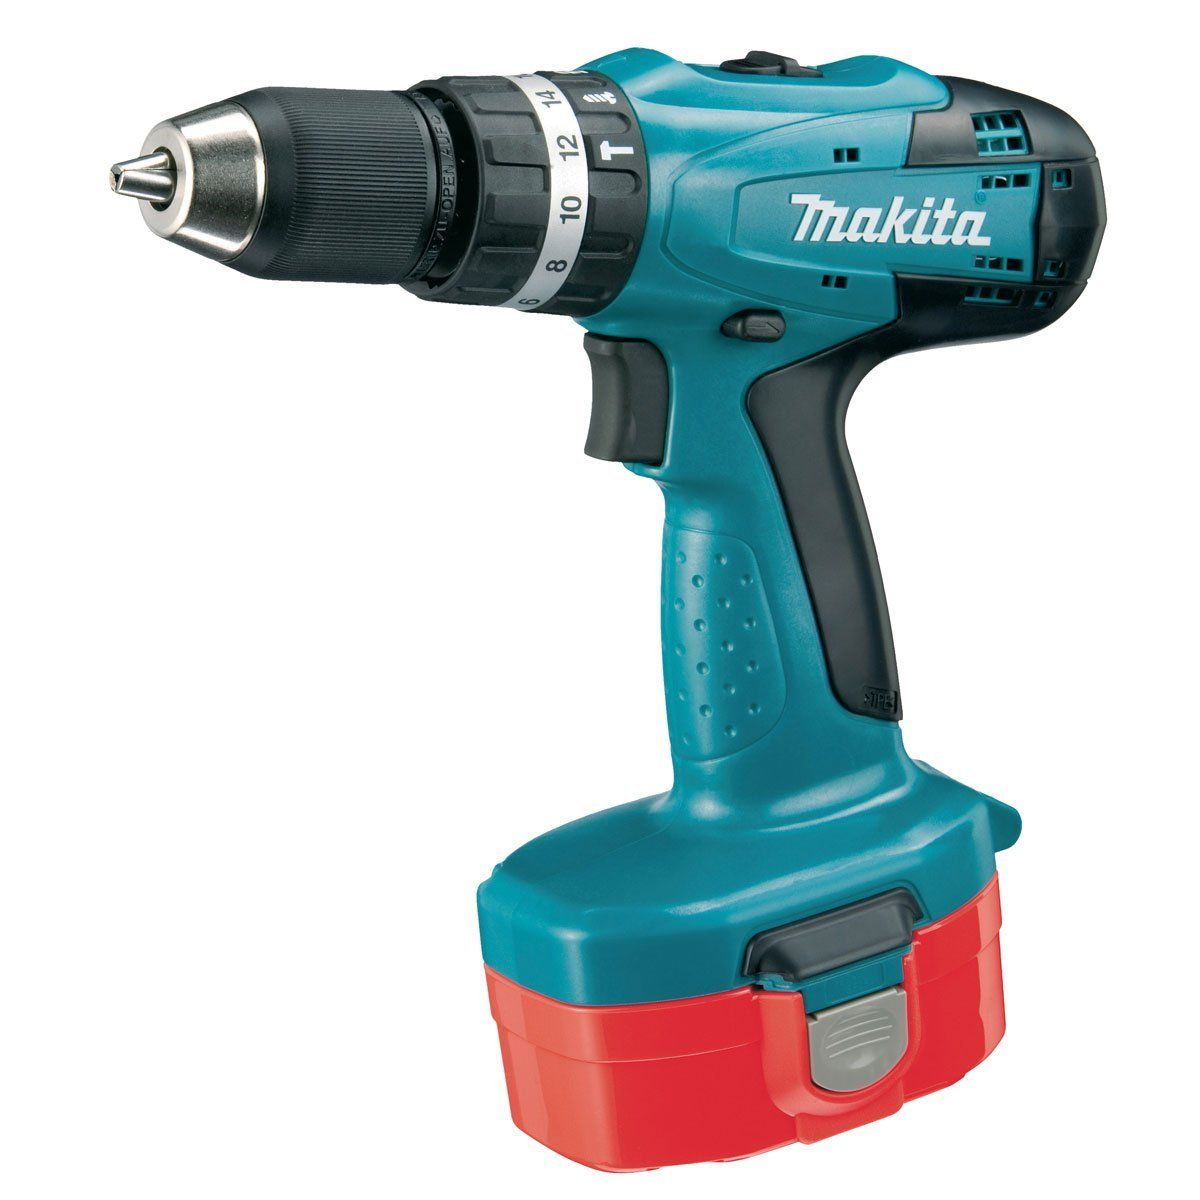 Drill battery Makita 6261DWPE: description, technical specifications, reviews